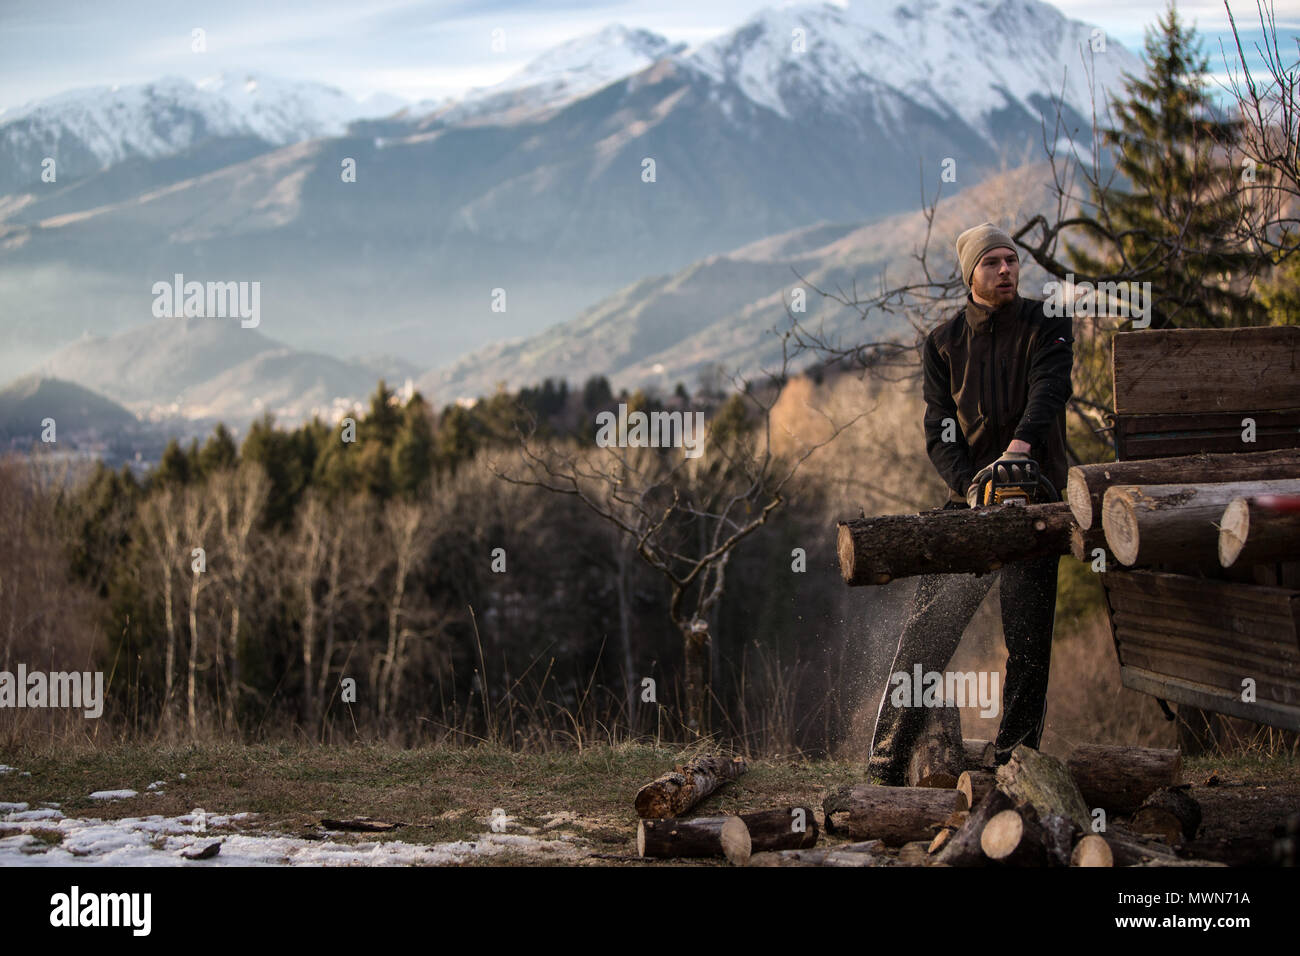 Lumberjack cutting wood with a chainsaw - Stock Image